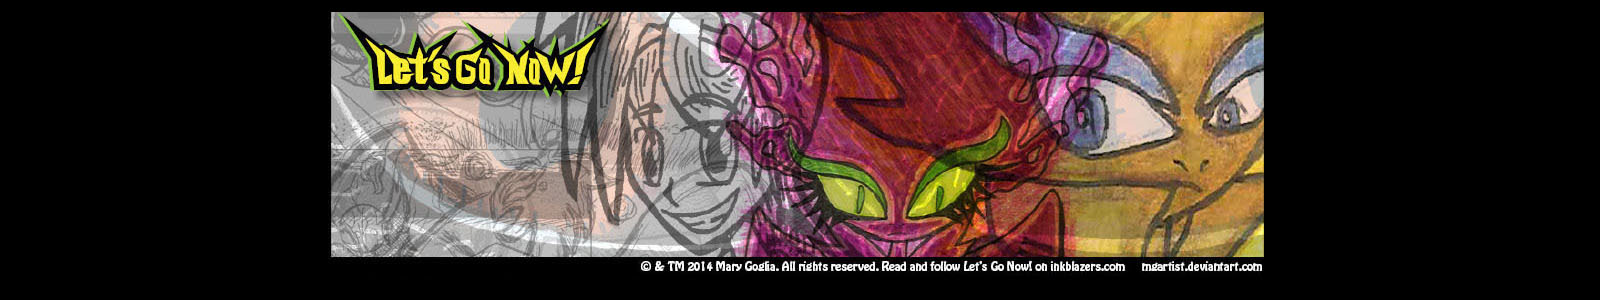 Let's Go Now! Webcomic Inkblazers Banner by MGartist